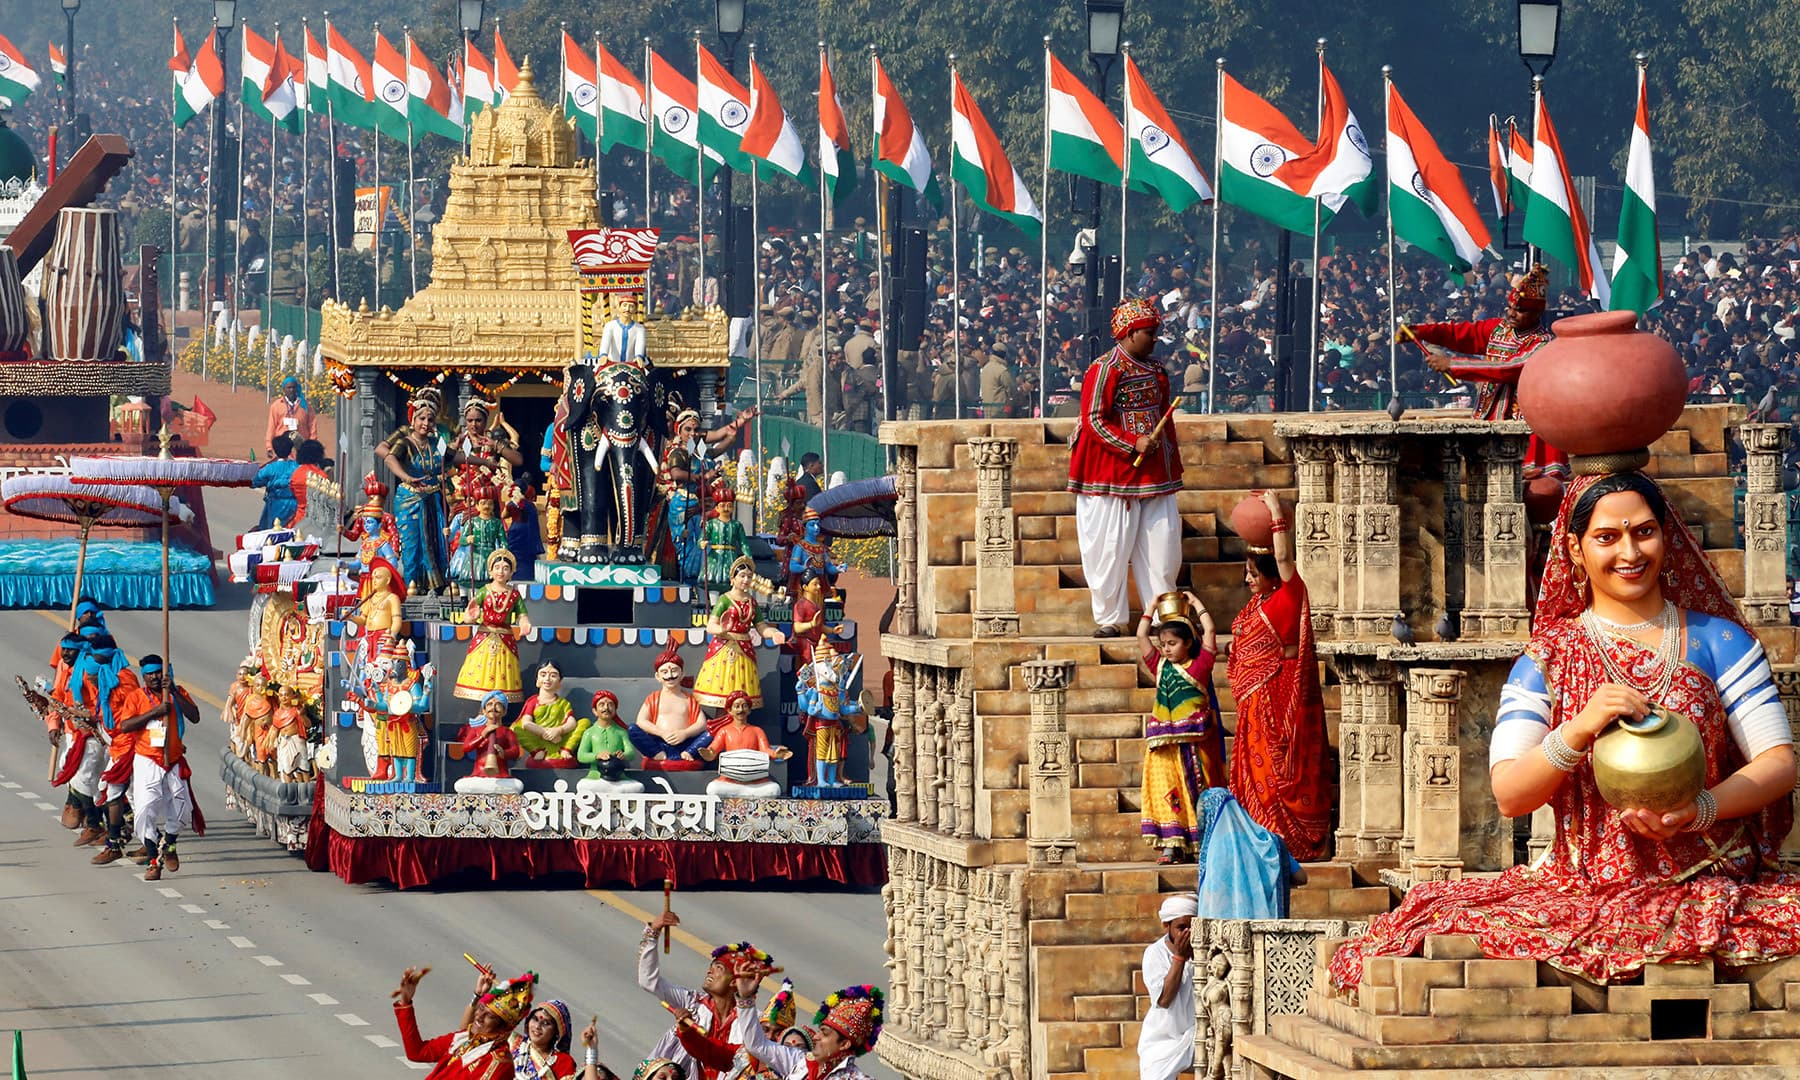 Tableaus from Gujarat and Andhra Pradesh states are displayed during India's Republic Day parade in New Delhi, India, January 26. — Reuters